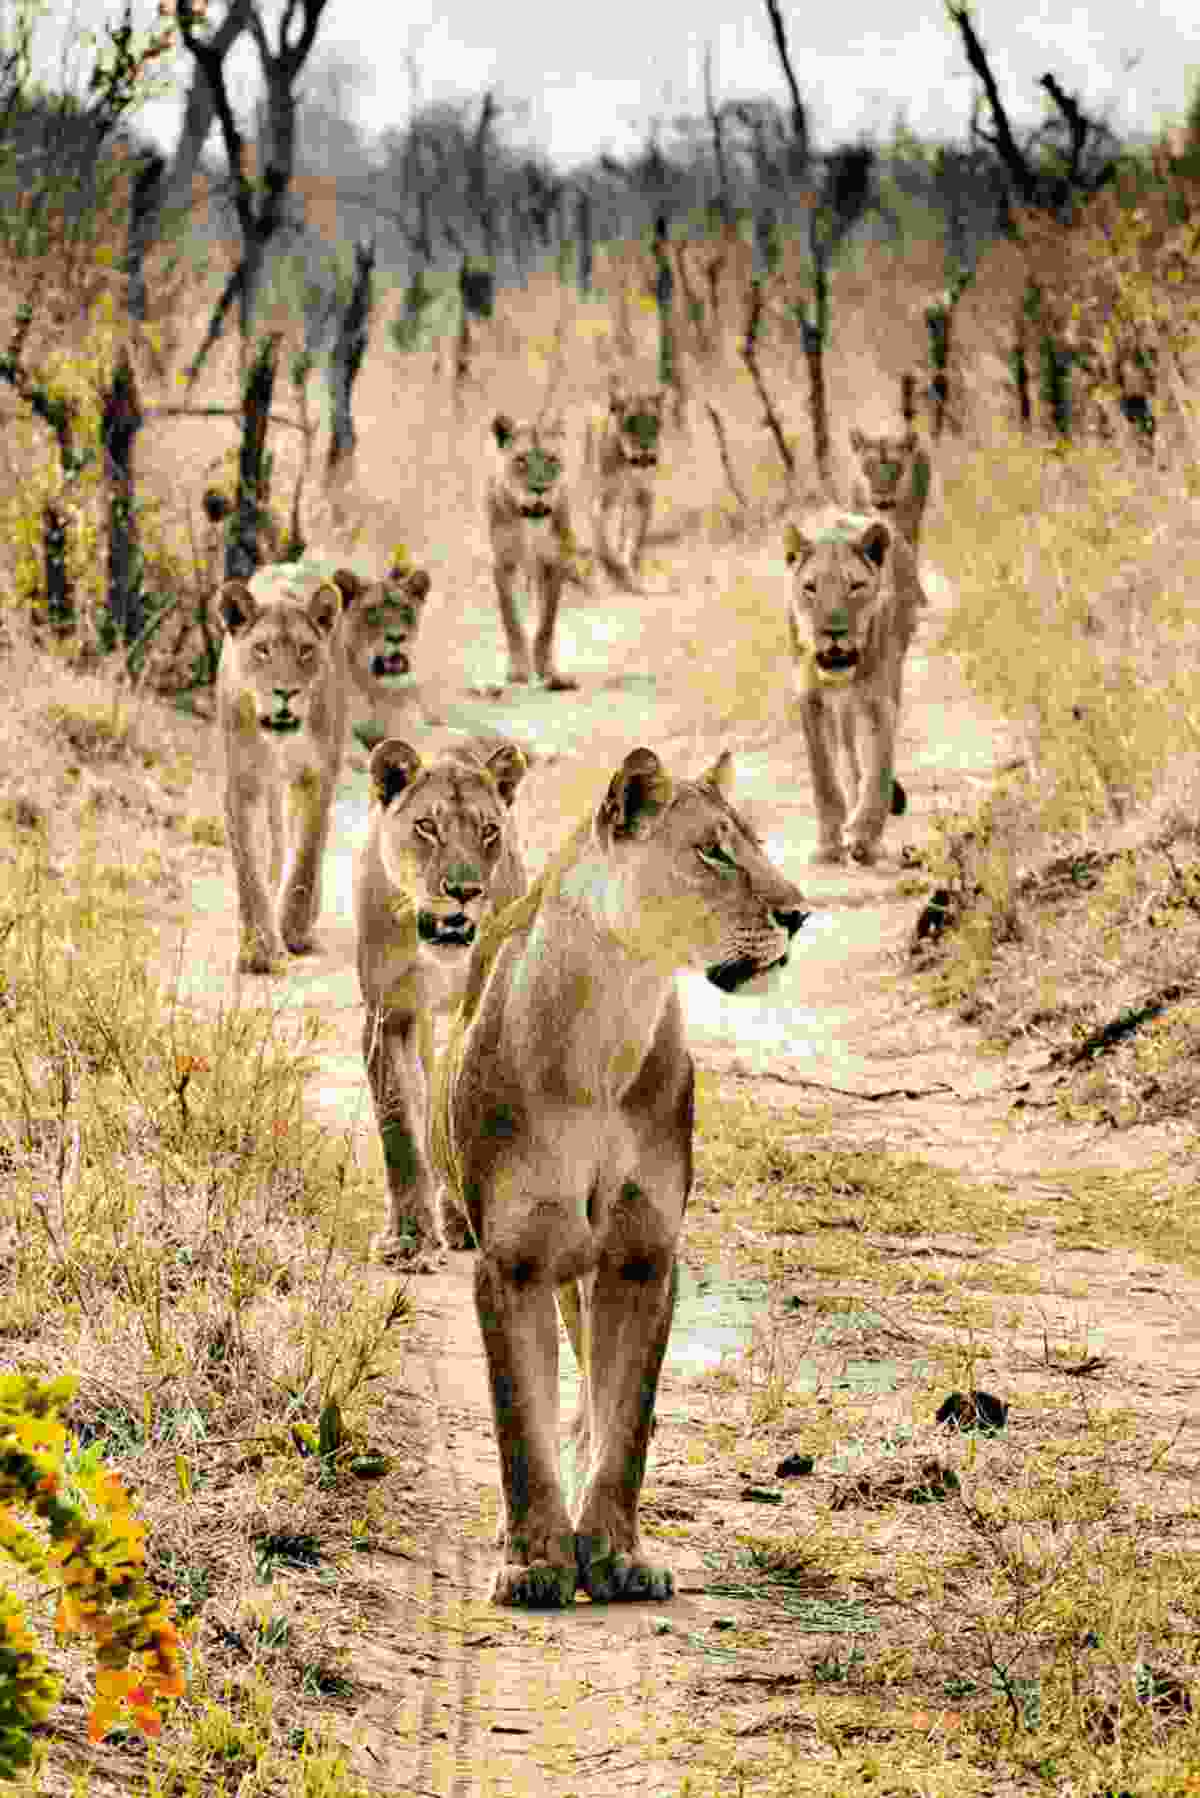 Lionesses prowl (Mark Eveleigh)